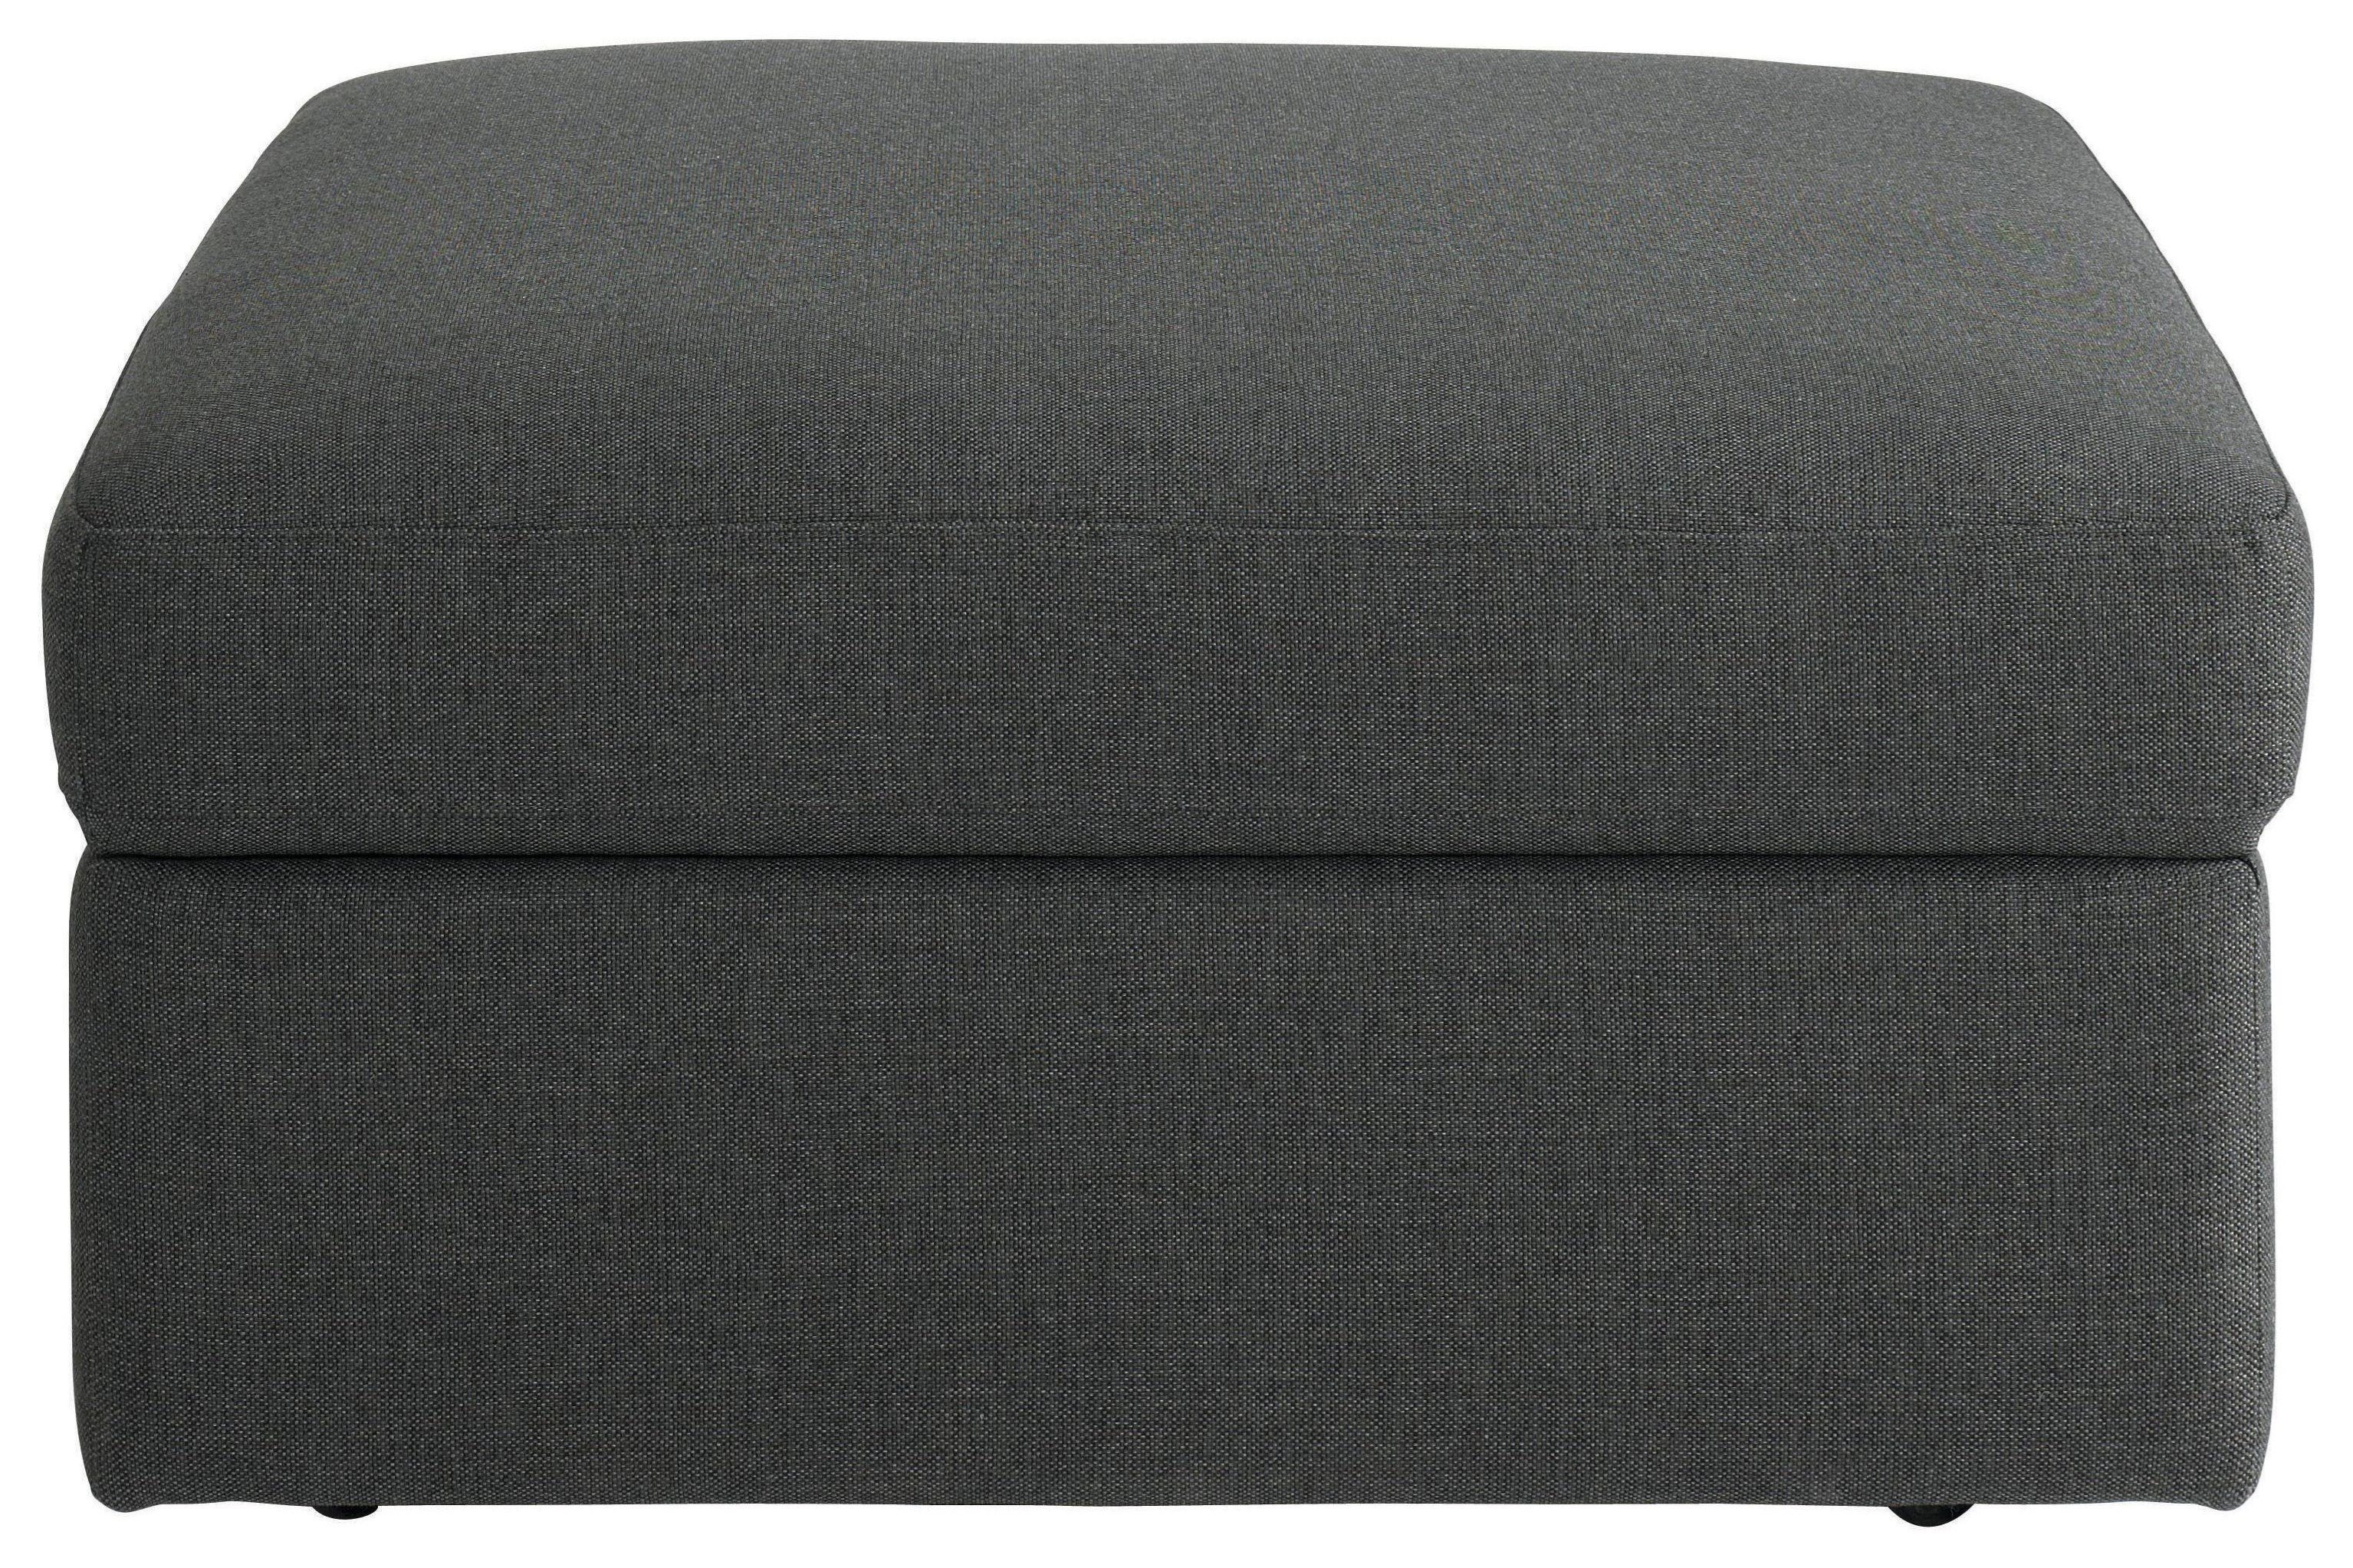 Bassett Beckham Storage Ottoman in Charcoal - Item Number: 2676-S2FC-FC178-9